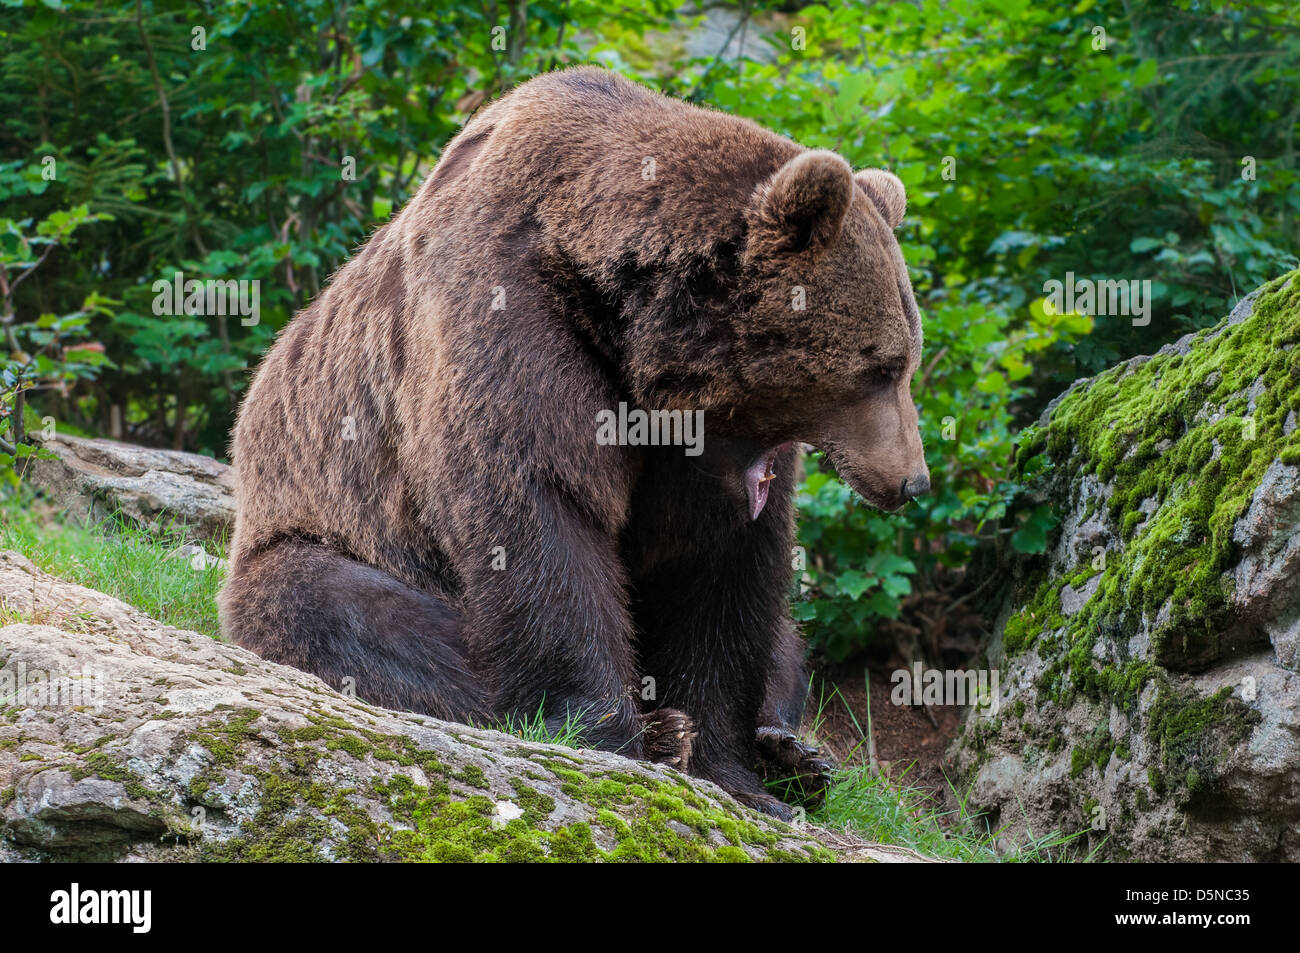 Brown bear photographed in Bayerischer Wald, Germany Stock Photo